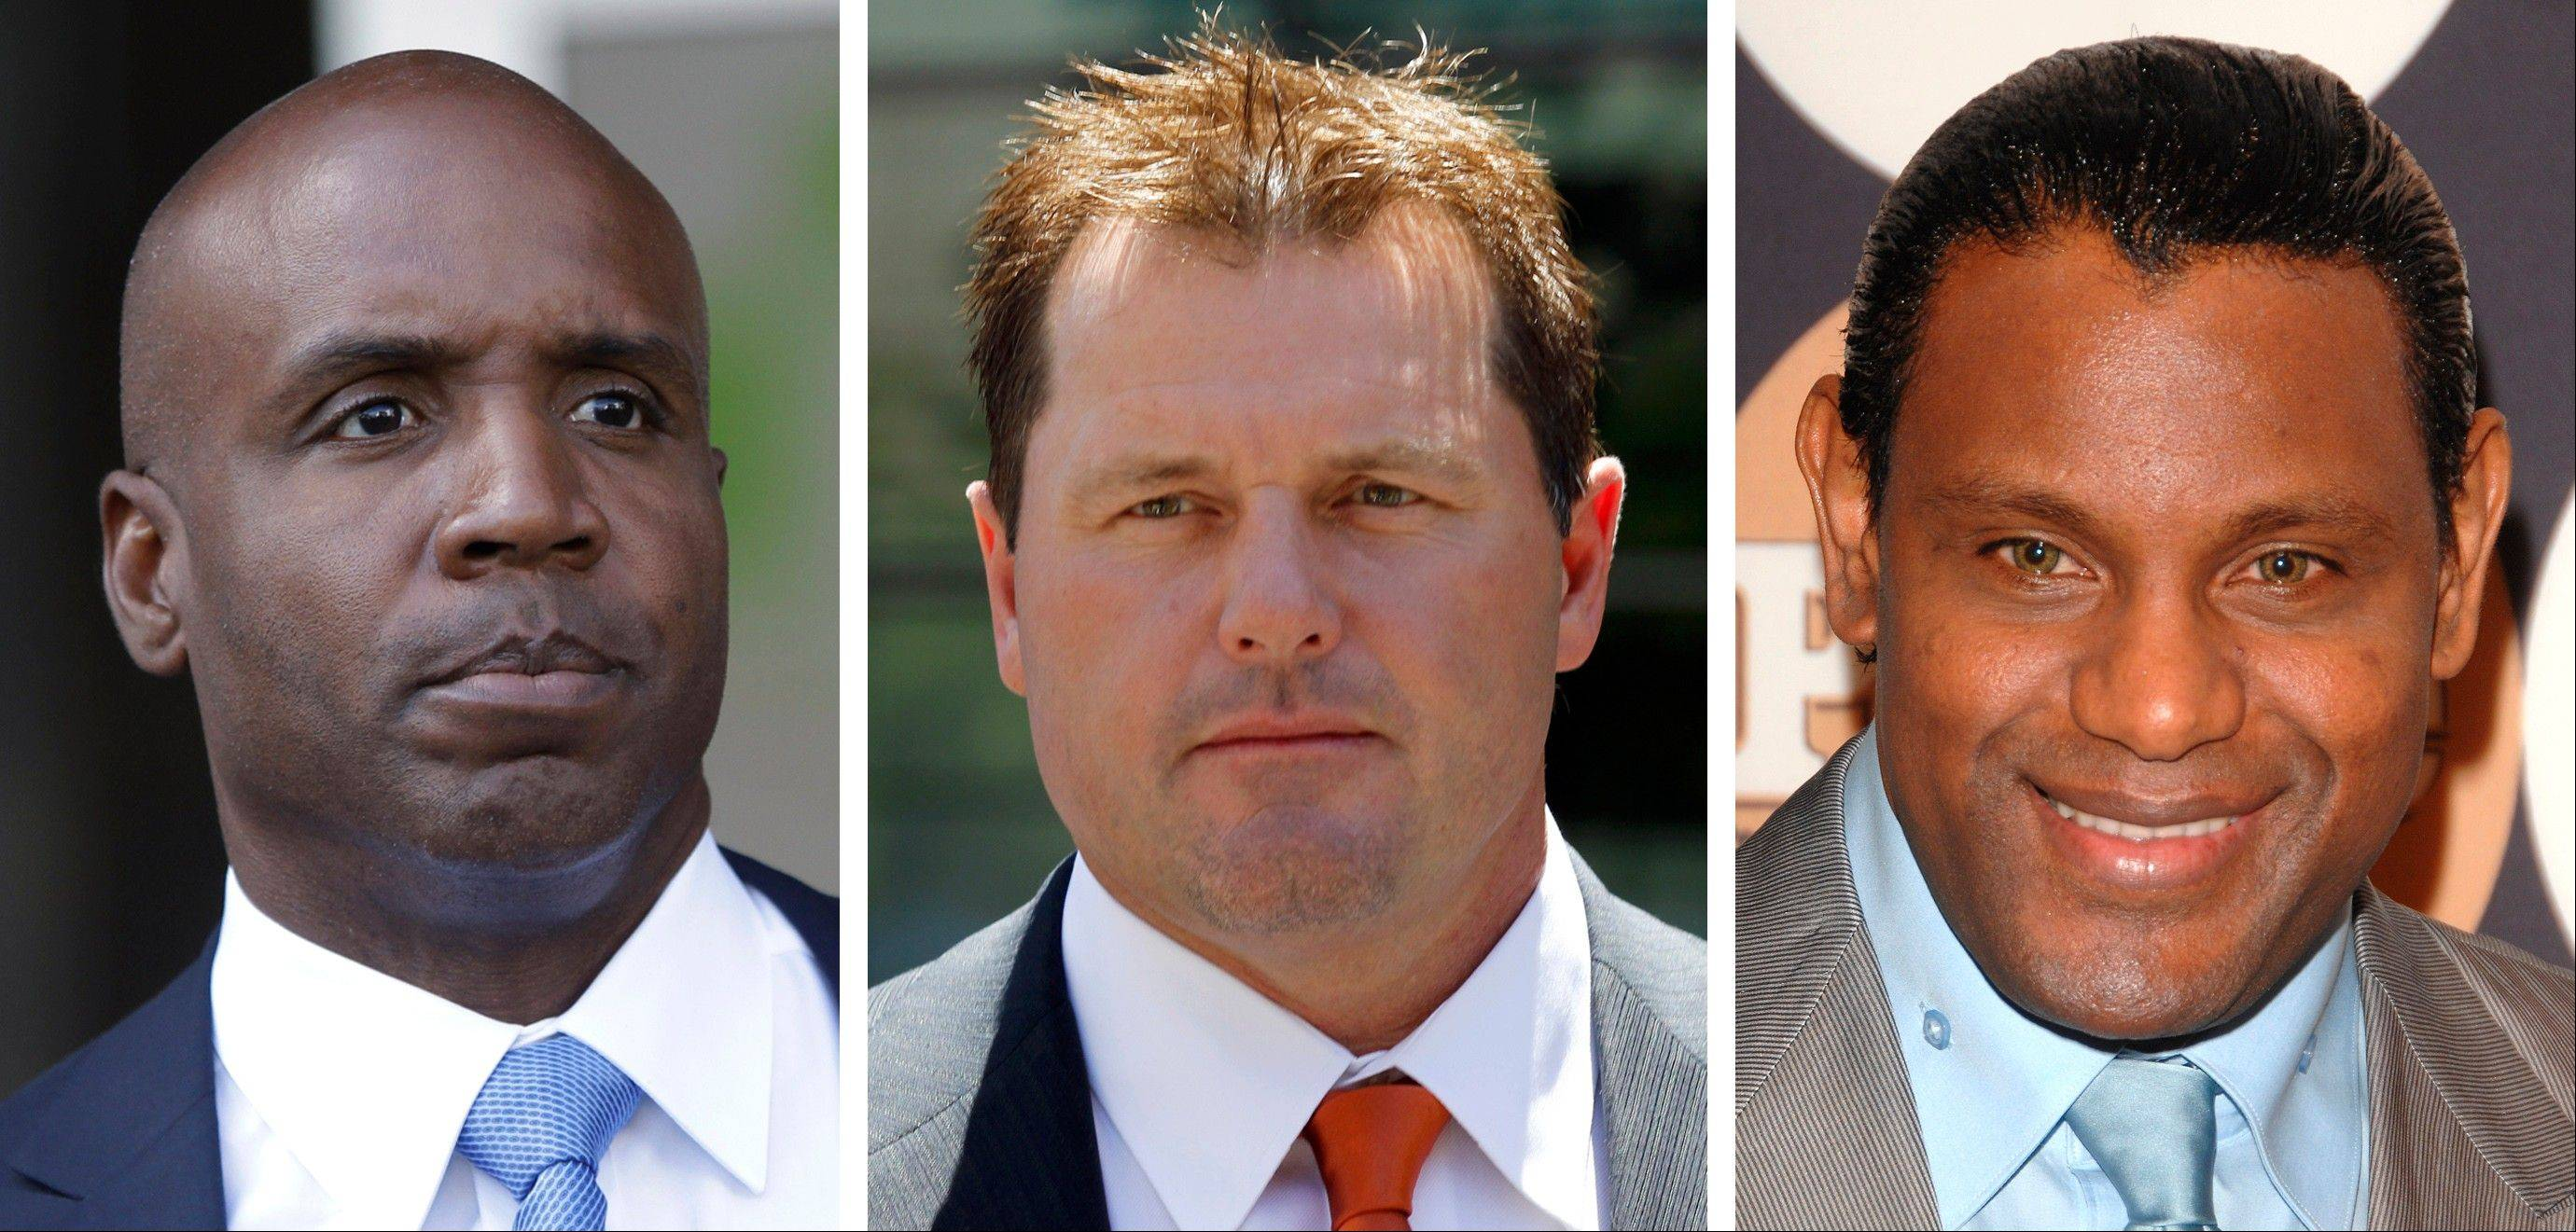 Former San Francisco Giants baseball player Barry Bonds, left, former pitcher Roger Clemens and former Cubs slugger Sammy Sosa didn't get enough votes for entrance to the National Baseball Hall of Fame. Sosa was far behind Bonds and Clemens.